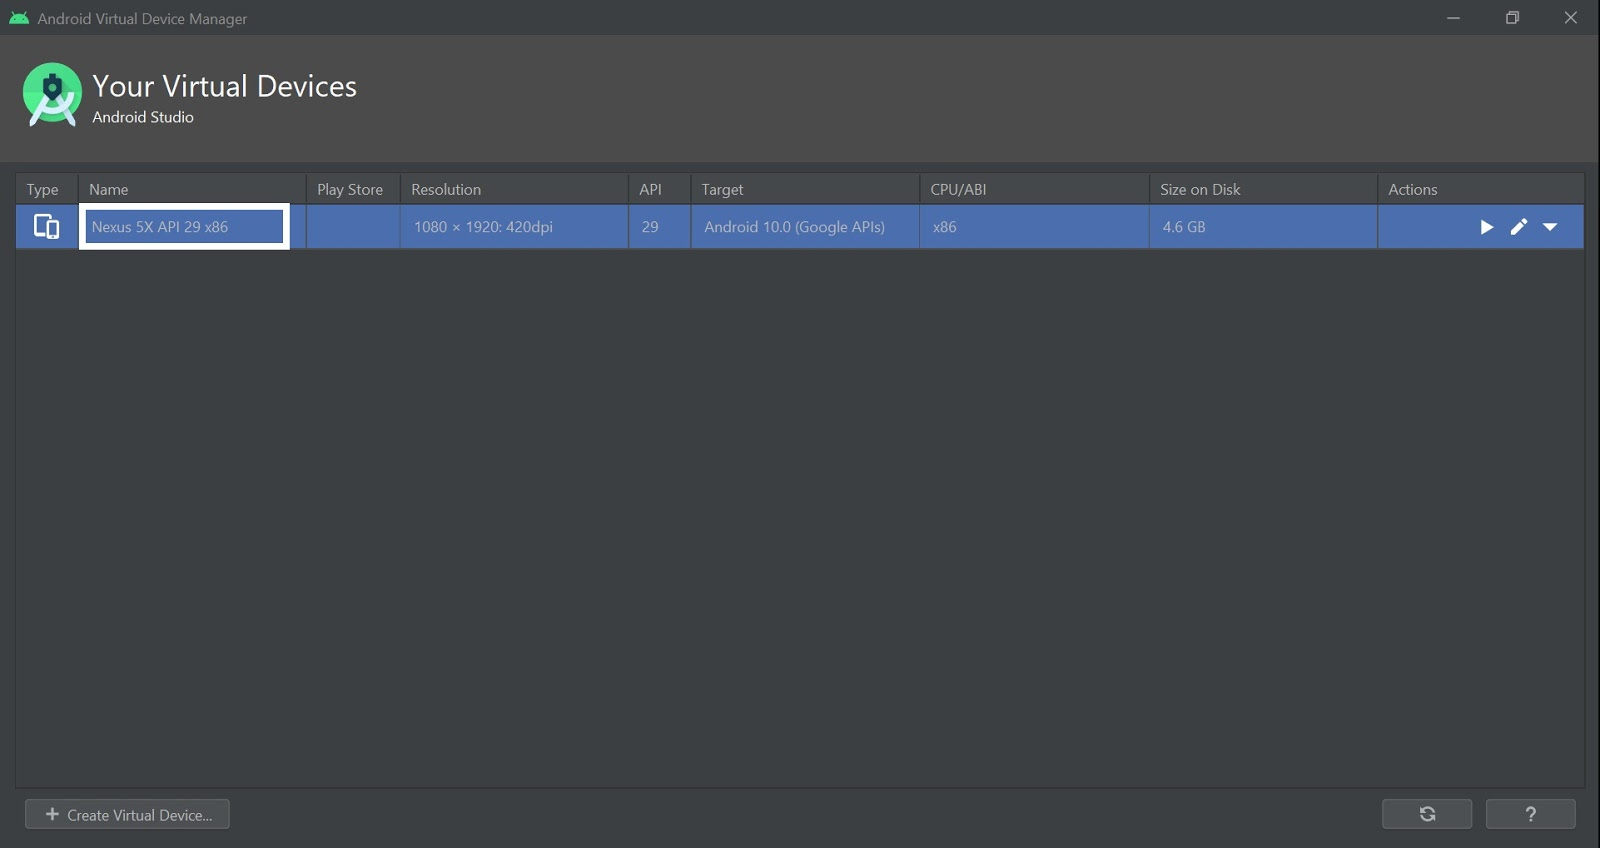 Geting AVD Emulator Name of Android Studio